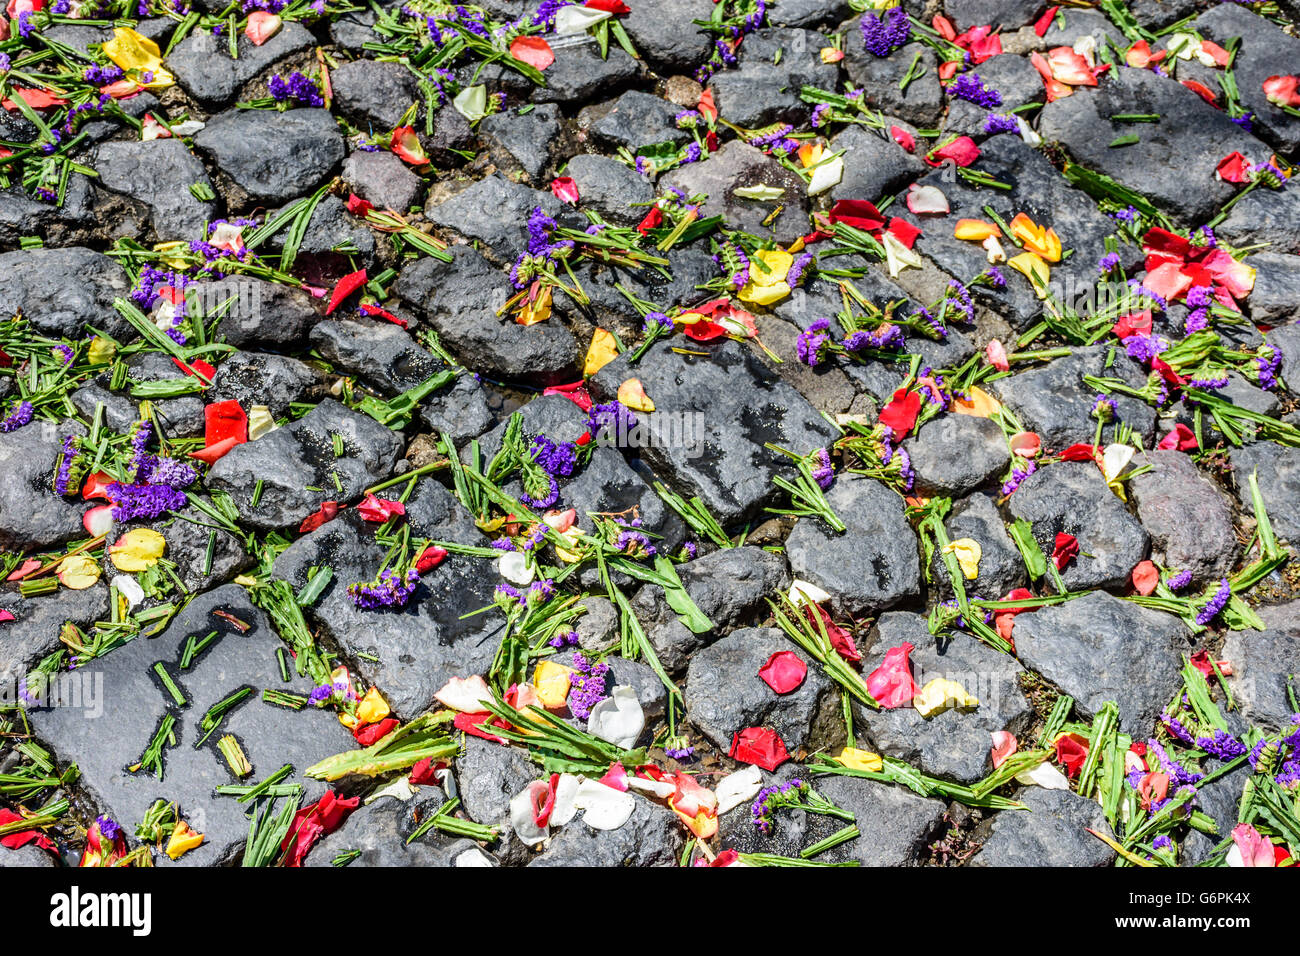 Lent carpet of flower petals on cobblestones for Holy Week procession in Antigua, Guatemala, Central America Stock Photo